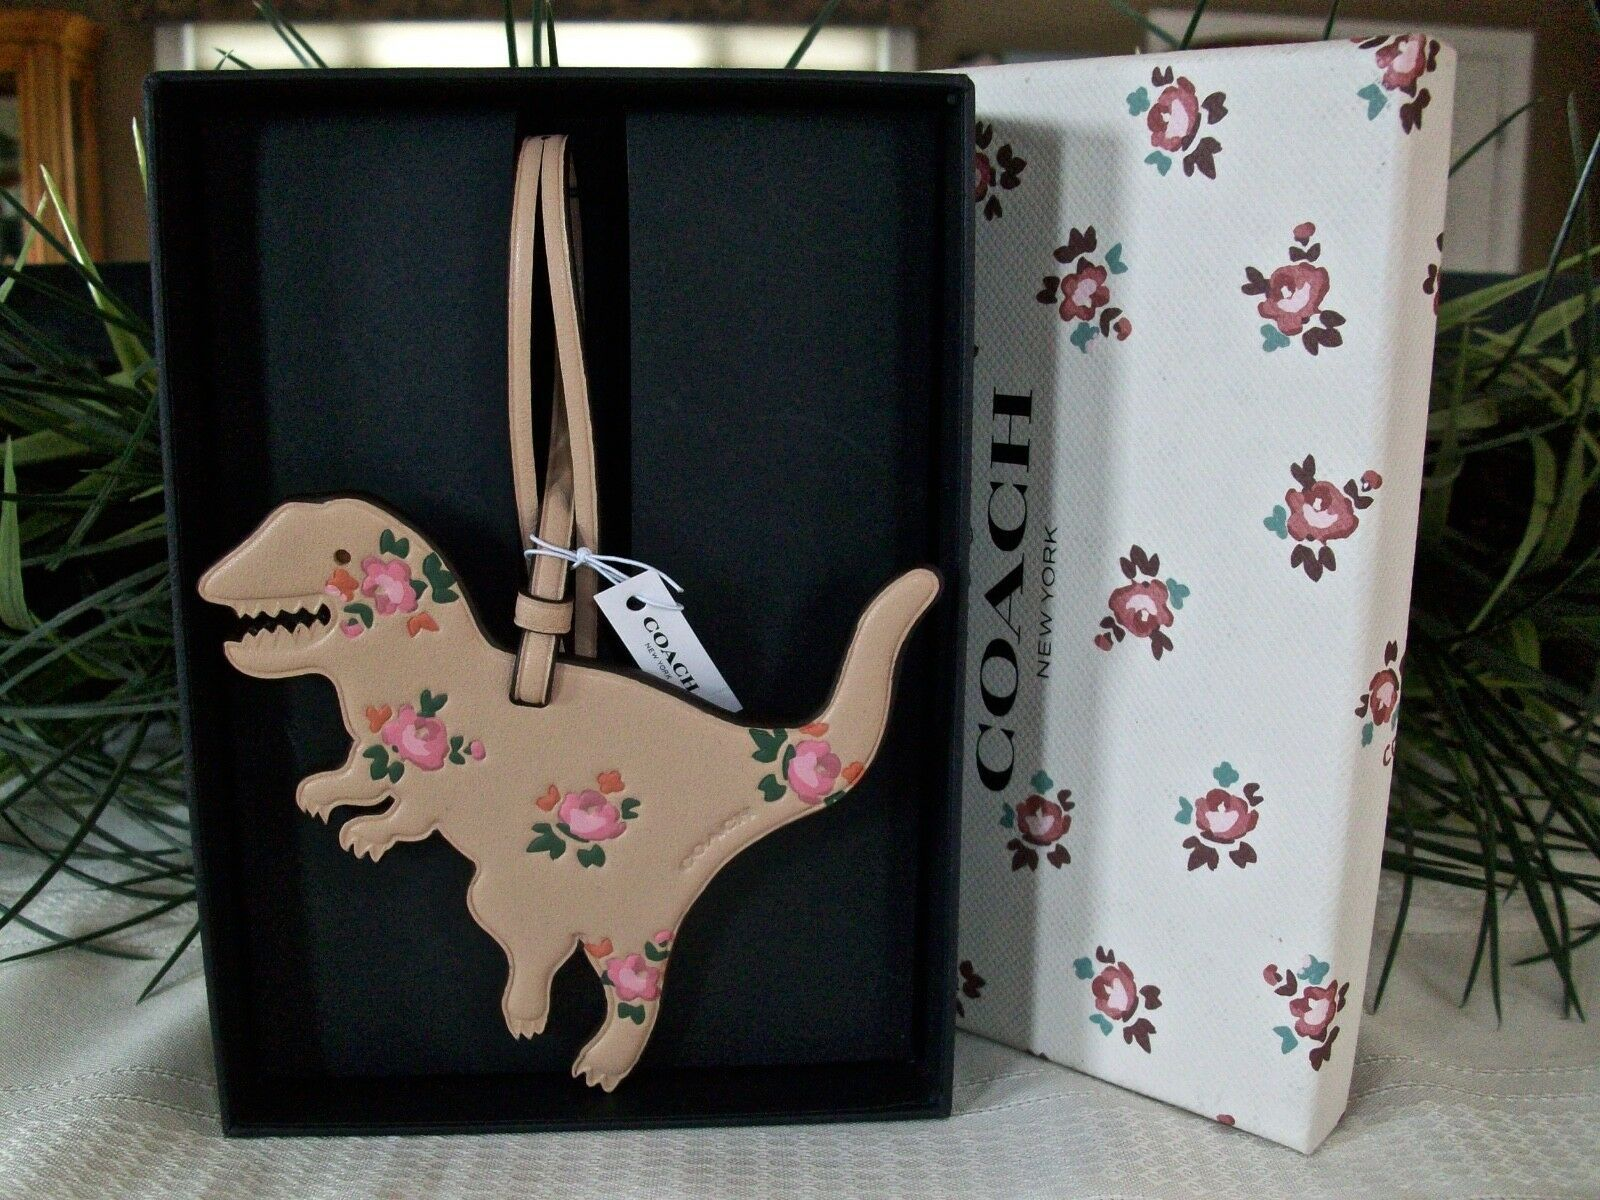 Coach Boxed Leather Printed Floral Rexy Dinosaur Charm Ornament 27418 Beechwood image 5